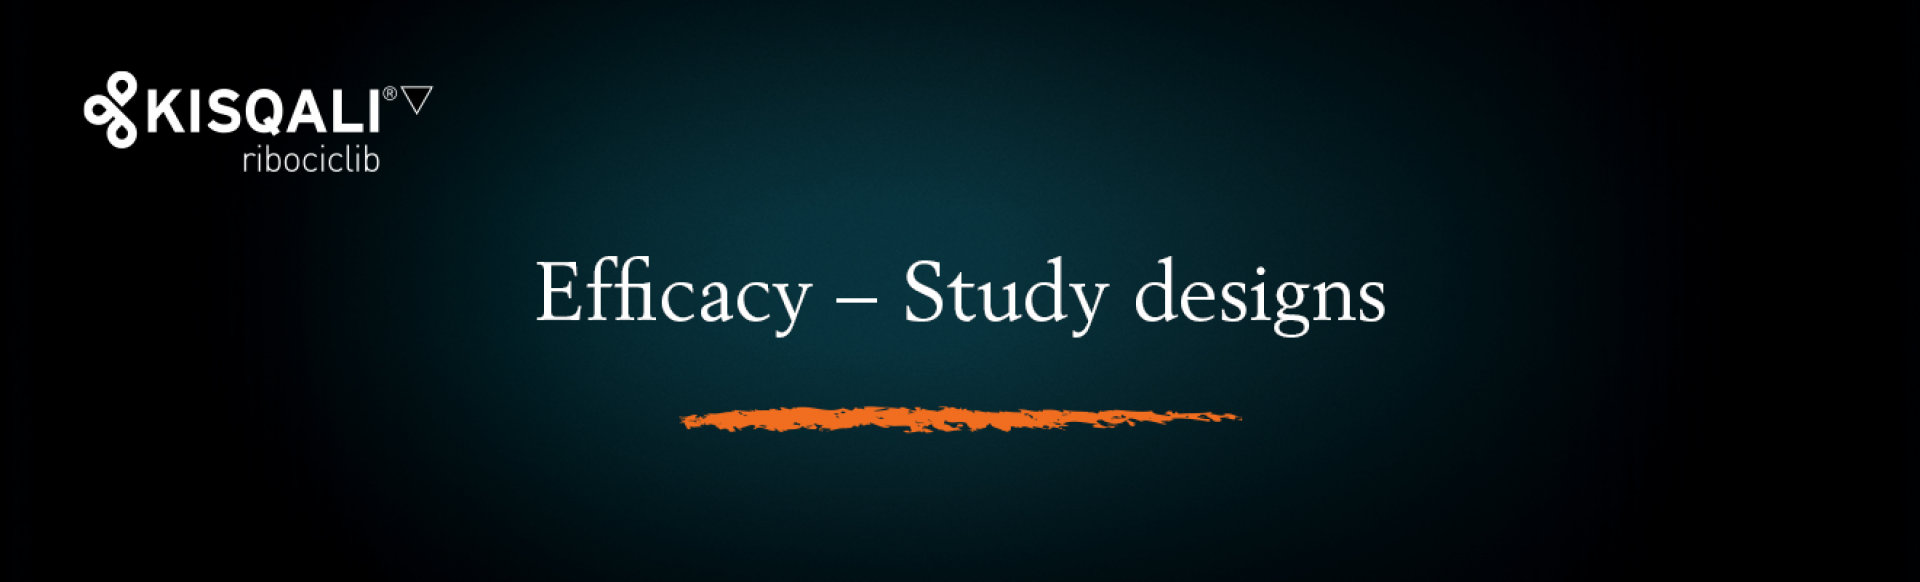 Top banner. Efficacy − Study designs